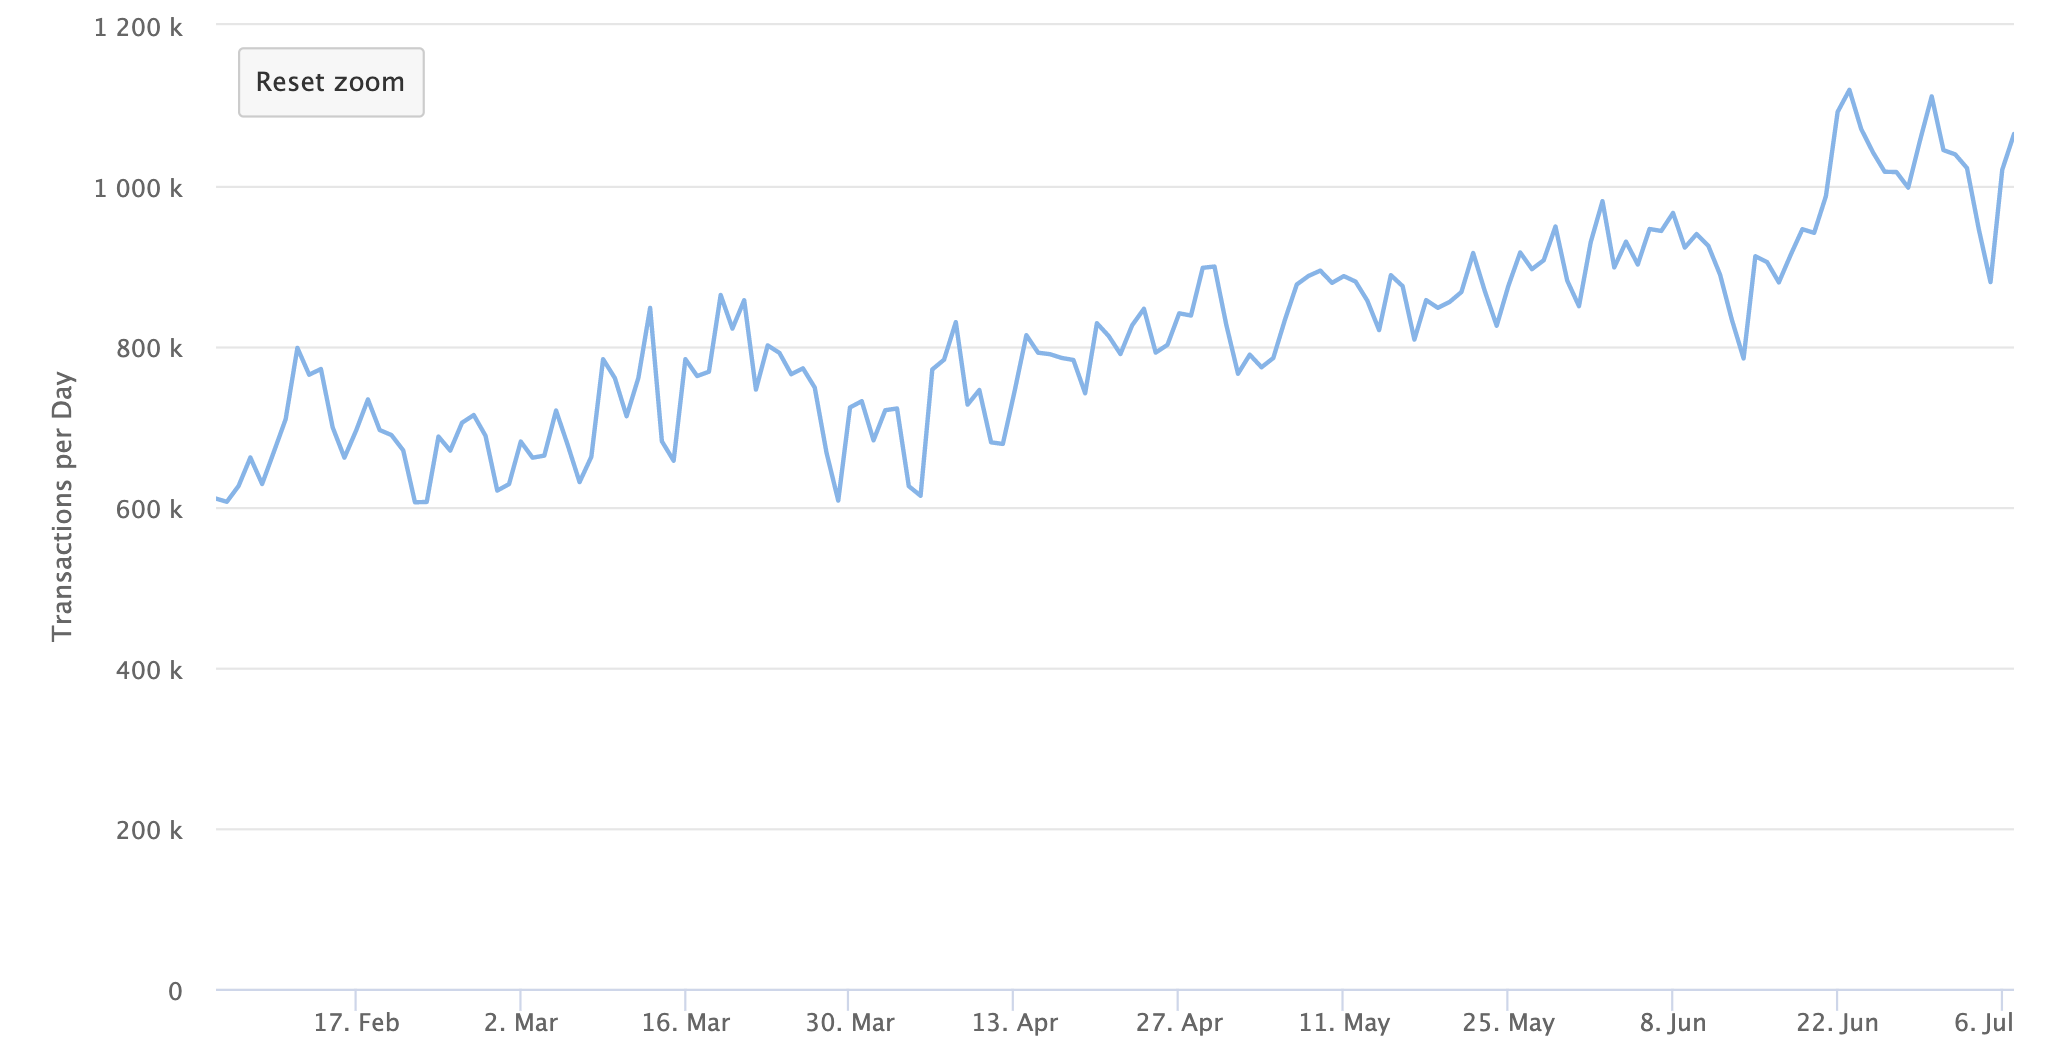 Ethereum daily transactions, July 2020